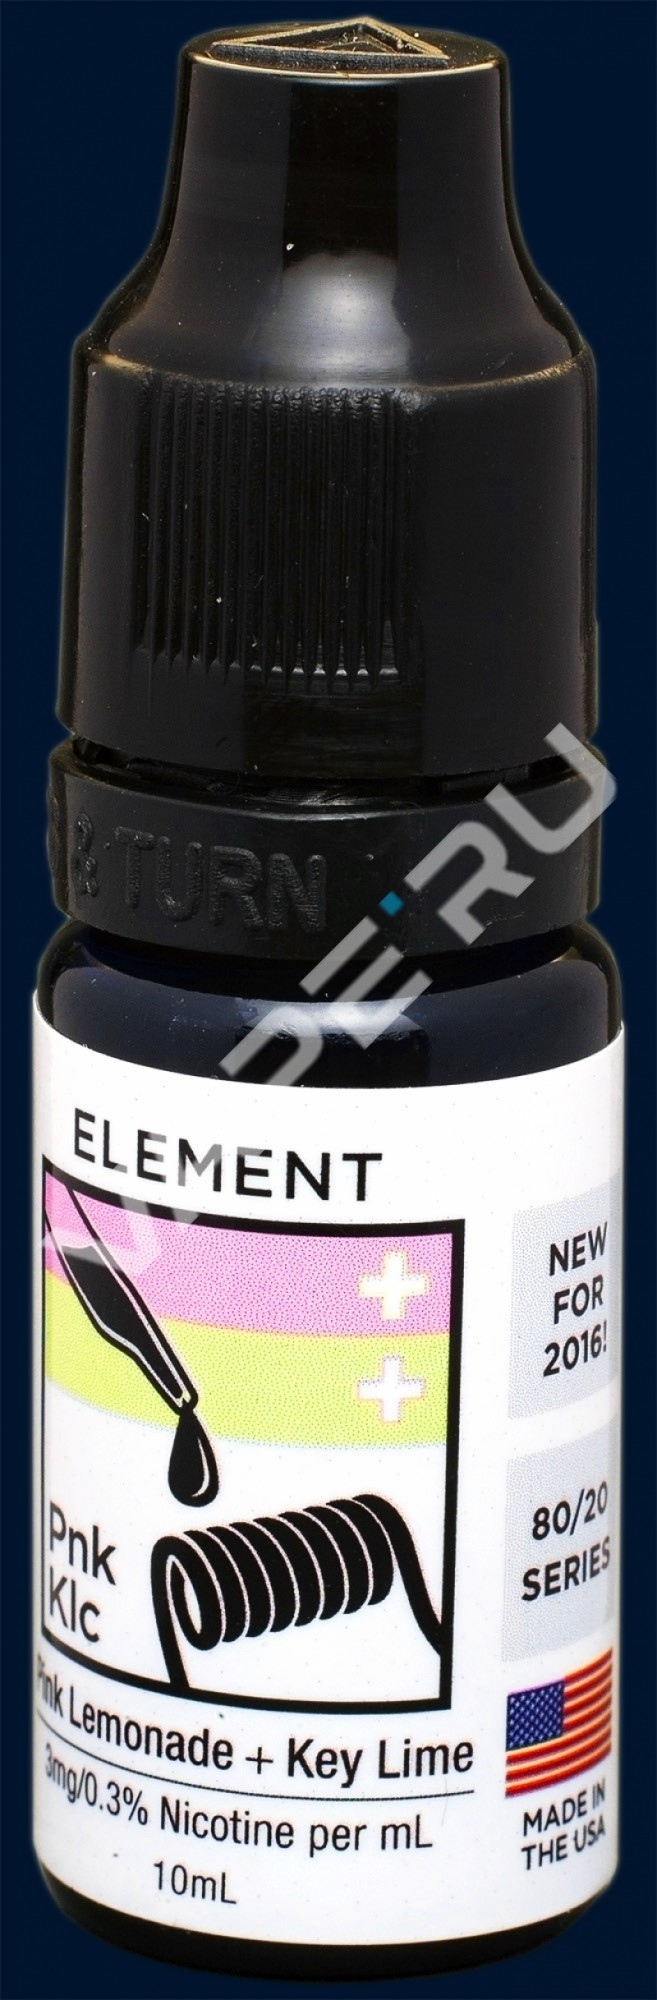 Element E- liquid, Emulsions, Dripper series, Pink Lemonade+Key Lime Cookie